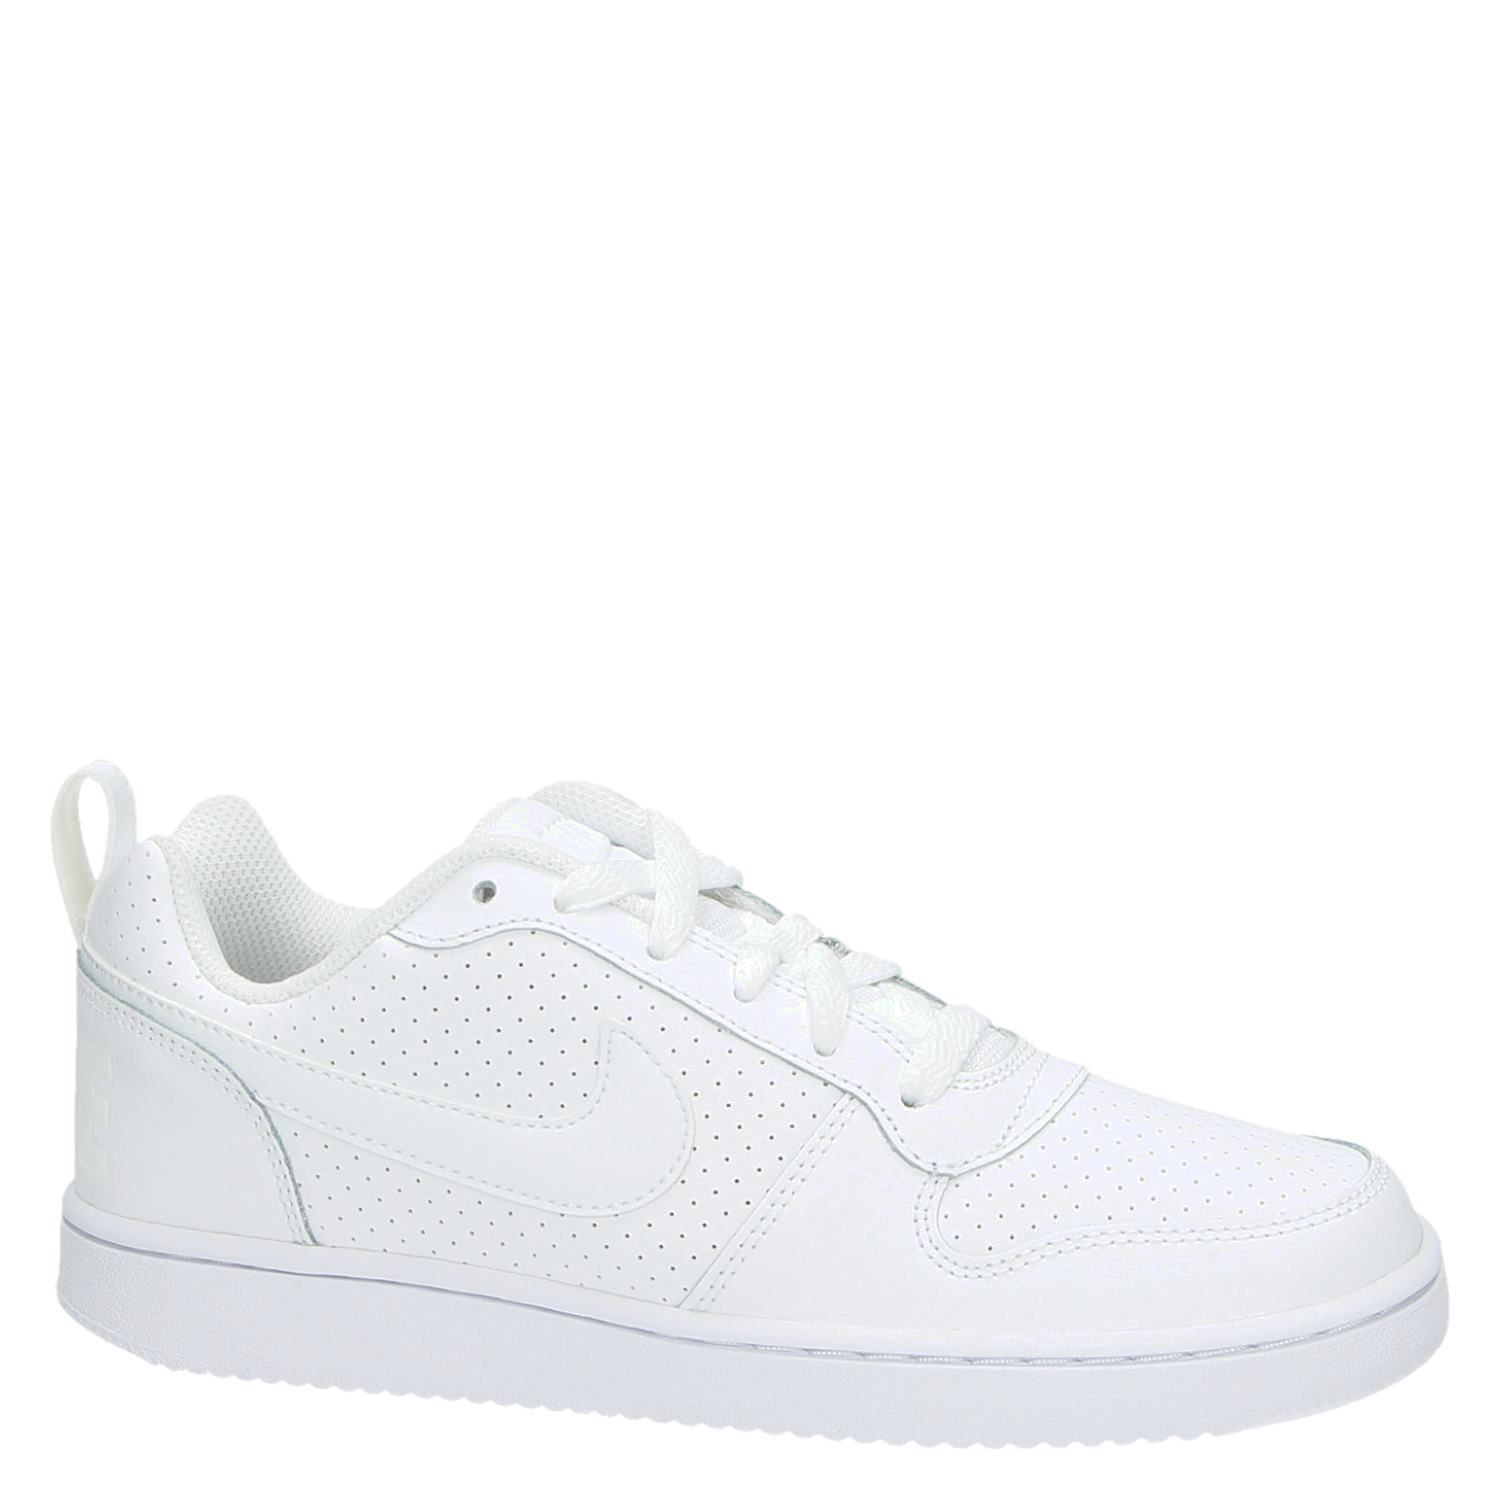 Nike Court Borough Low dames lage sneakers wit